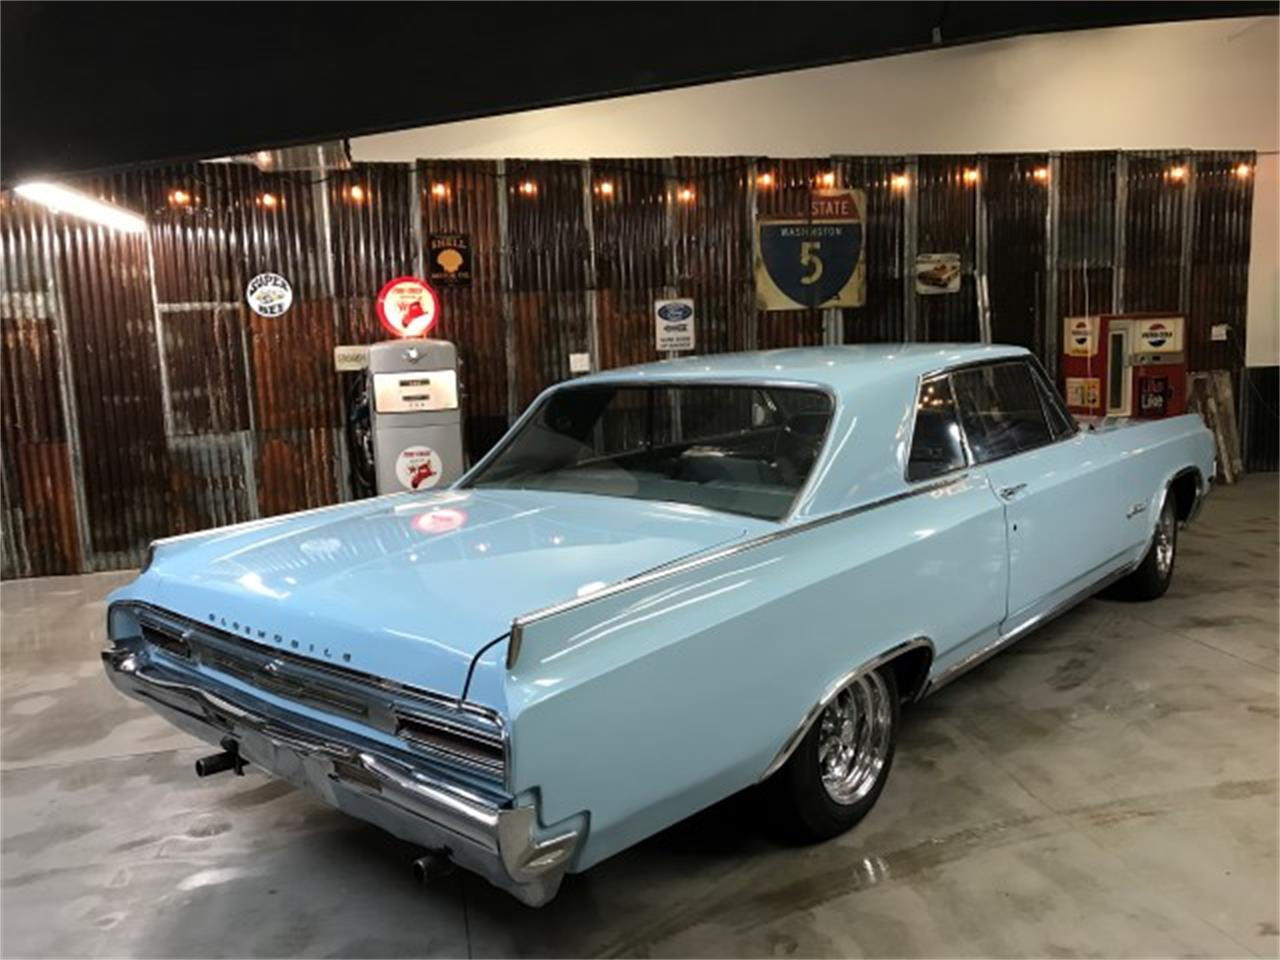 Large Picture of 1964 Jetstar 88 located in SHERWOOD Oregon Offered by Cool Classic Rides LLC - LFW4